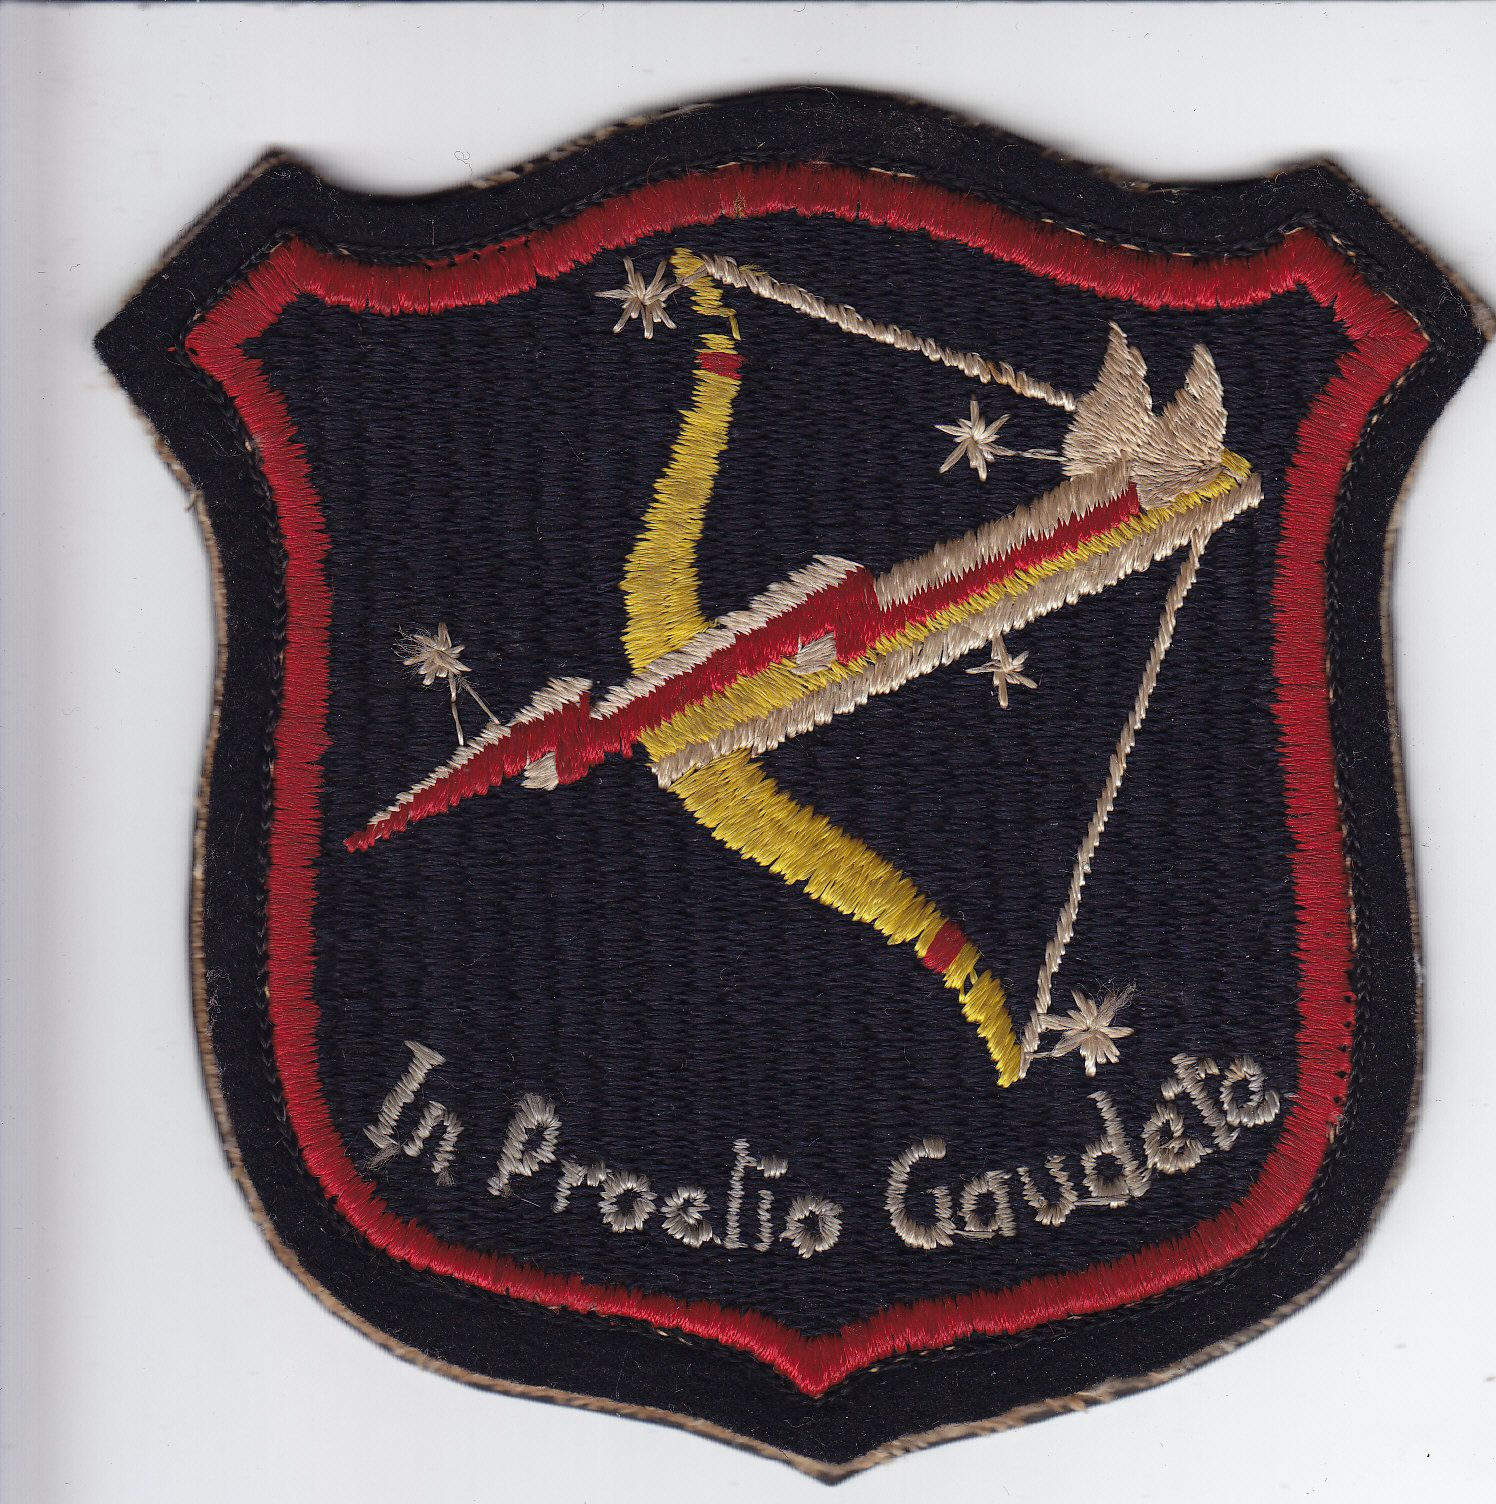 Original WWII 475th Fighter Group Patch, Embroidered on